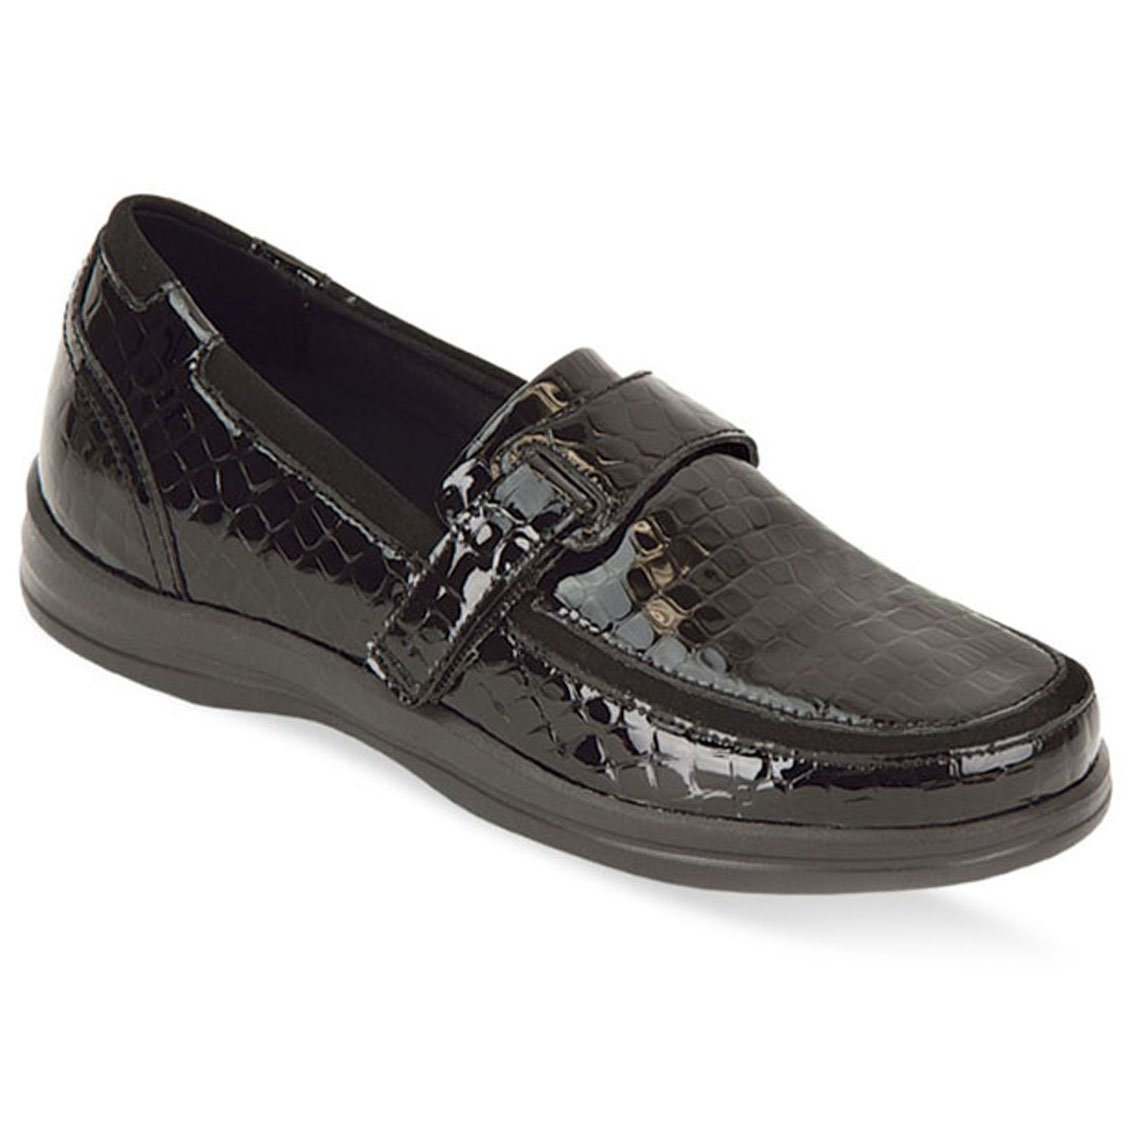 Apex Womens A205w Evelyn Loafer Flat